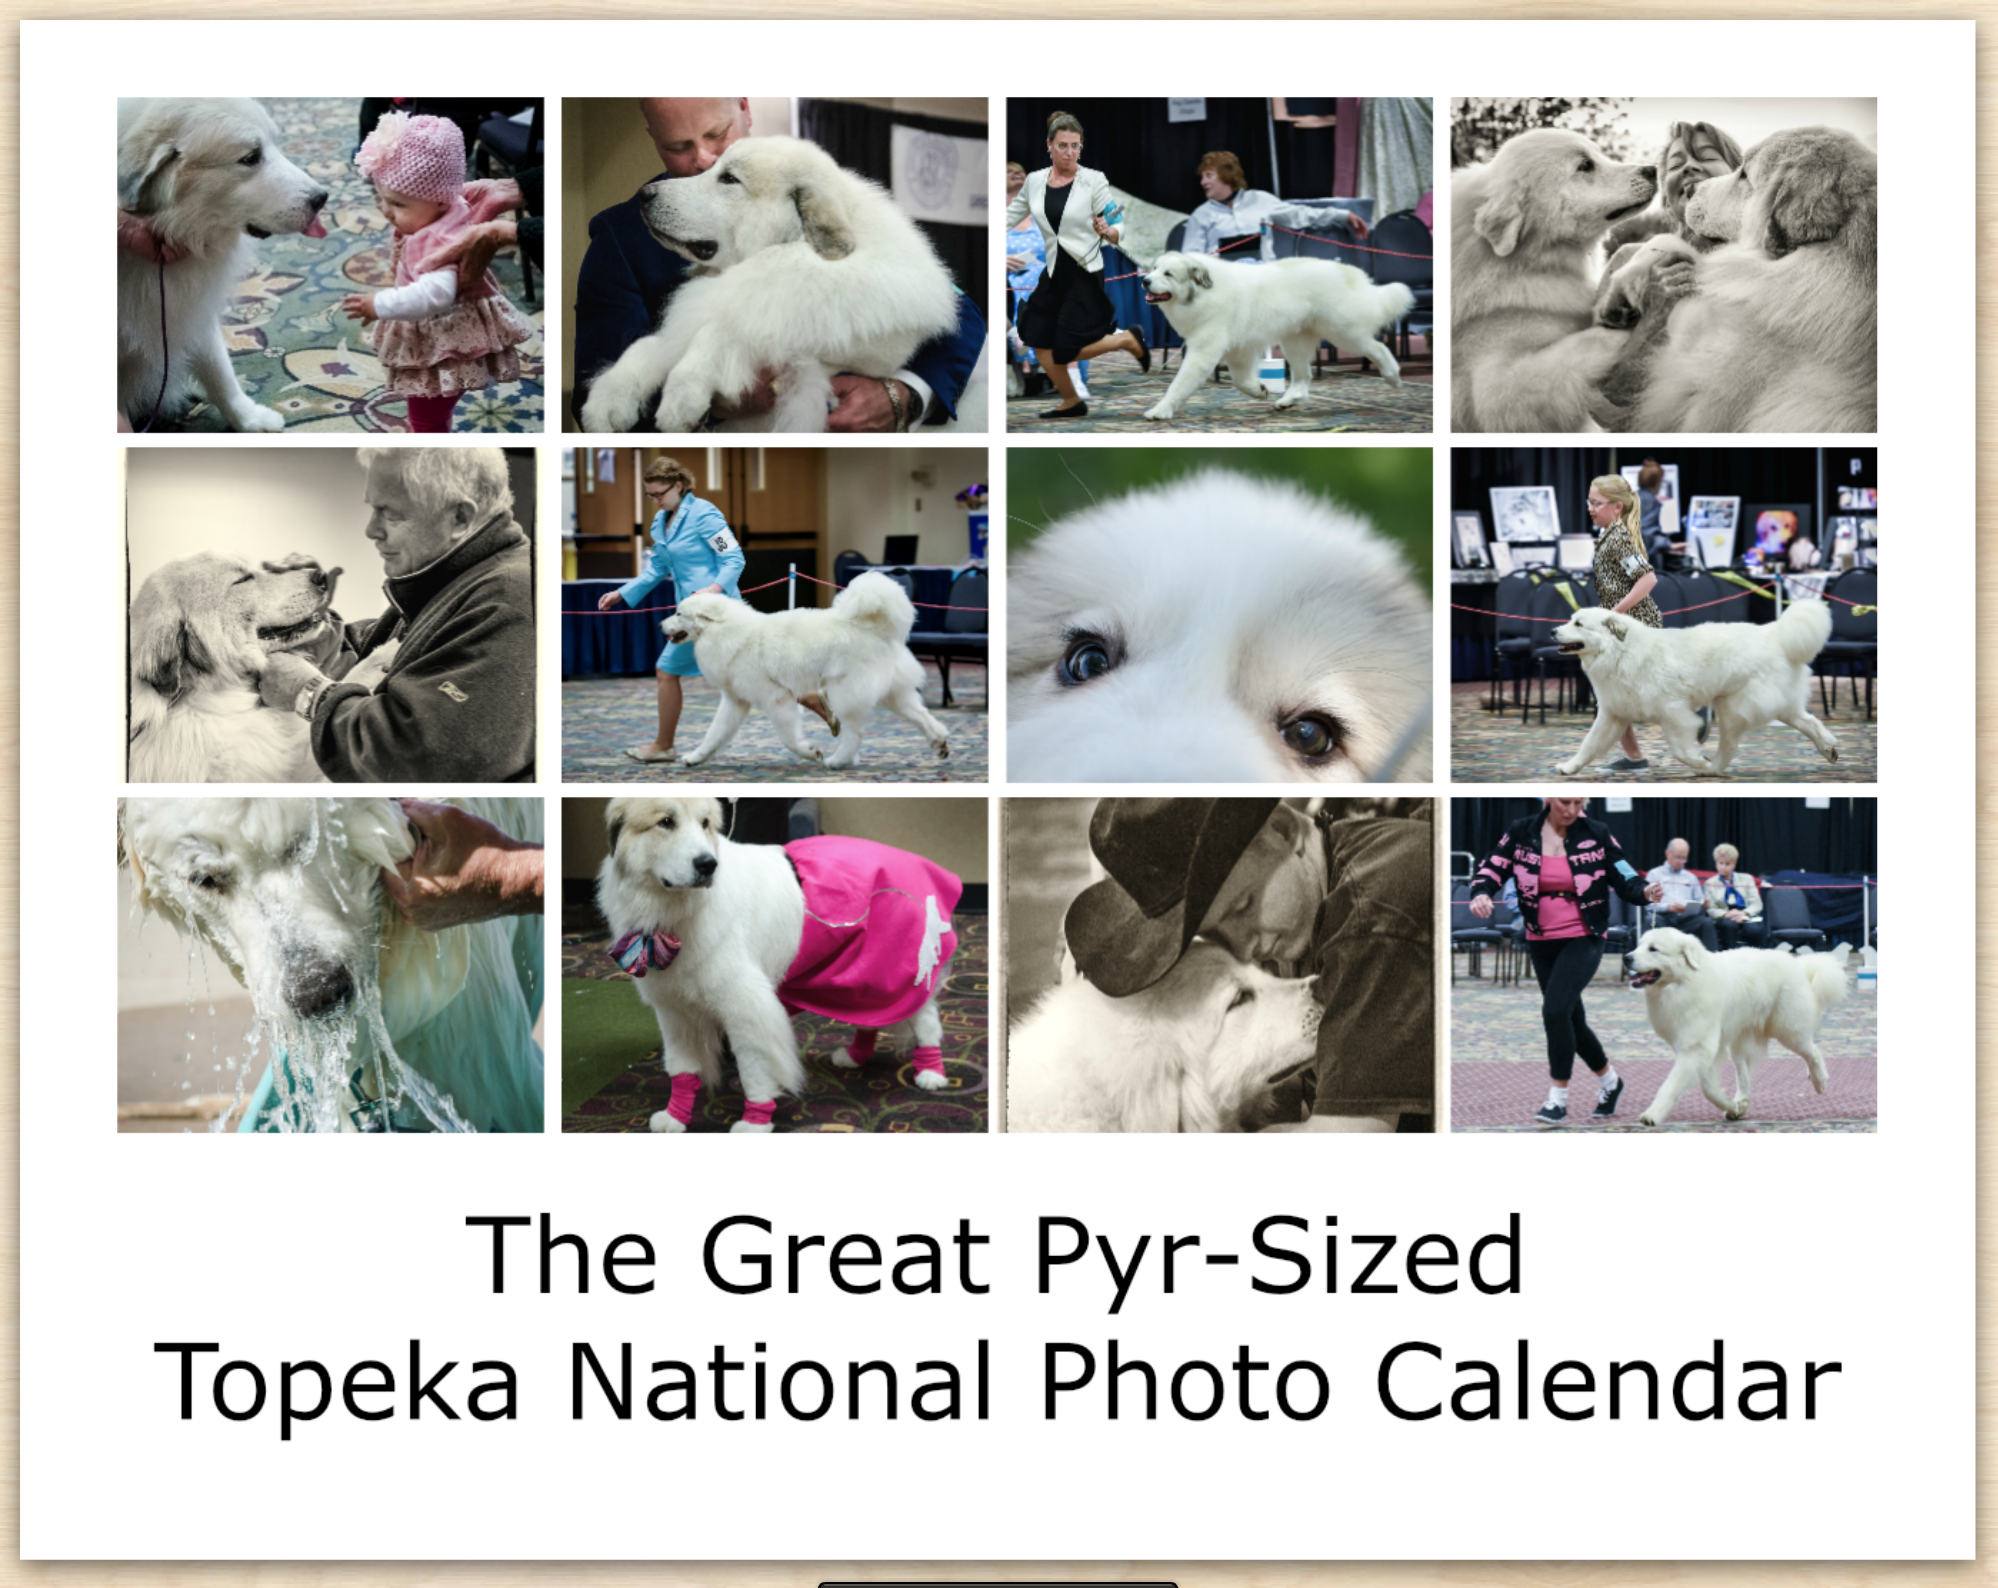 1-The Great Pyr-sized Topeka National Photo Calendar